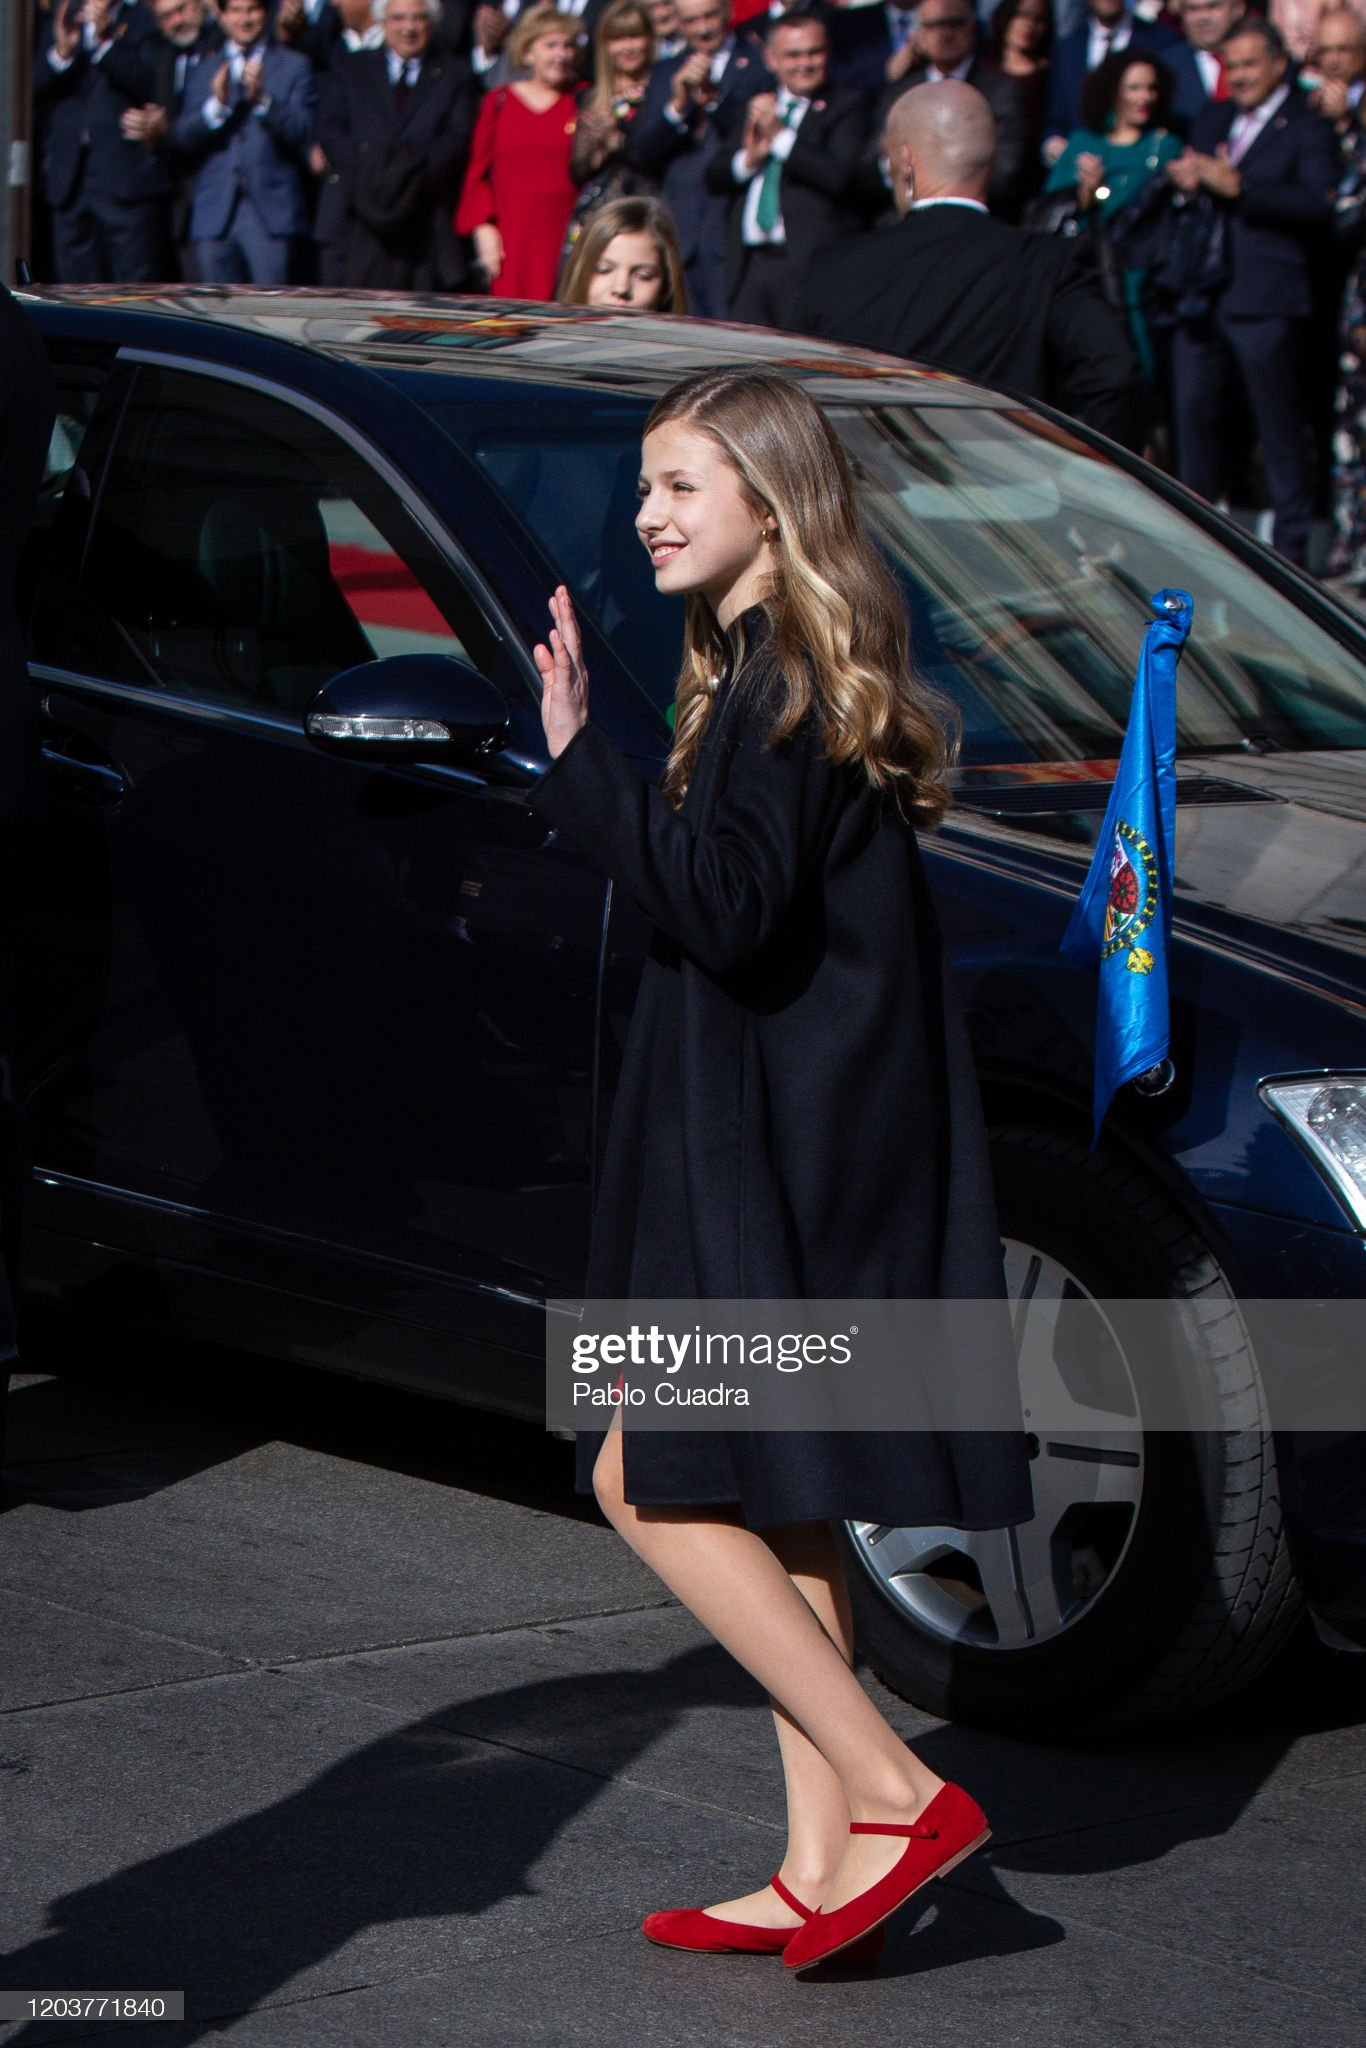 https://media.gettyimages.com/photos/princess-leonor-of-spain-attends-the-solemn-opening-of-the-14th-at-picture-id1203771840?s=2048x2048